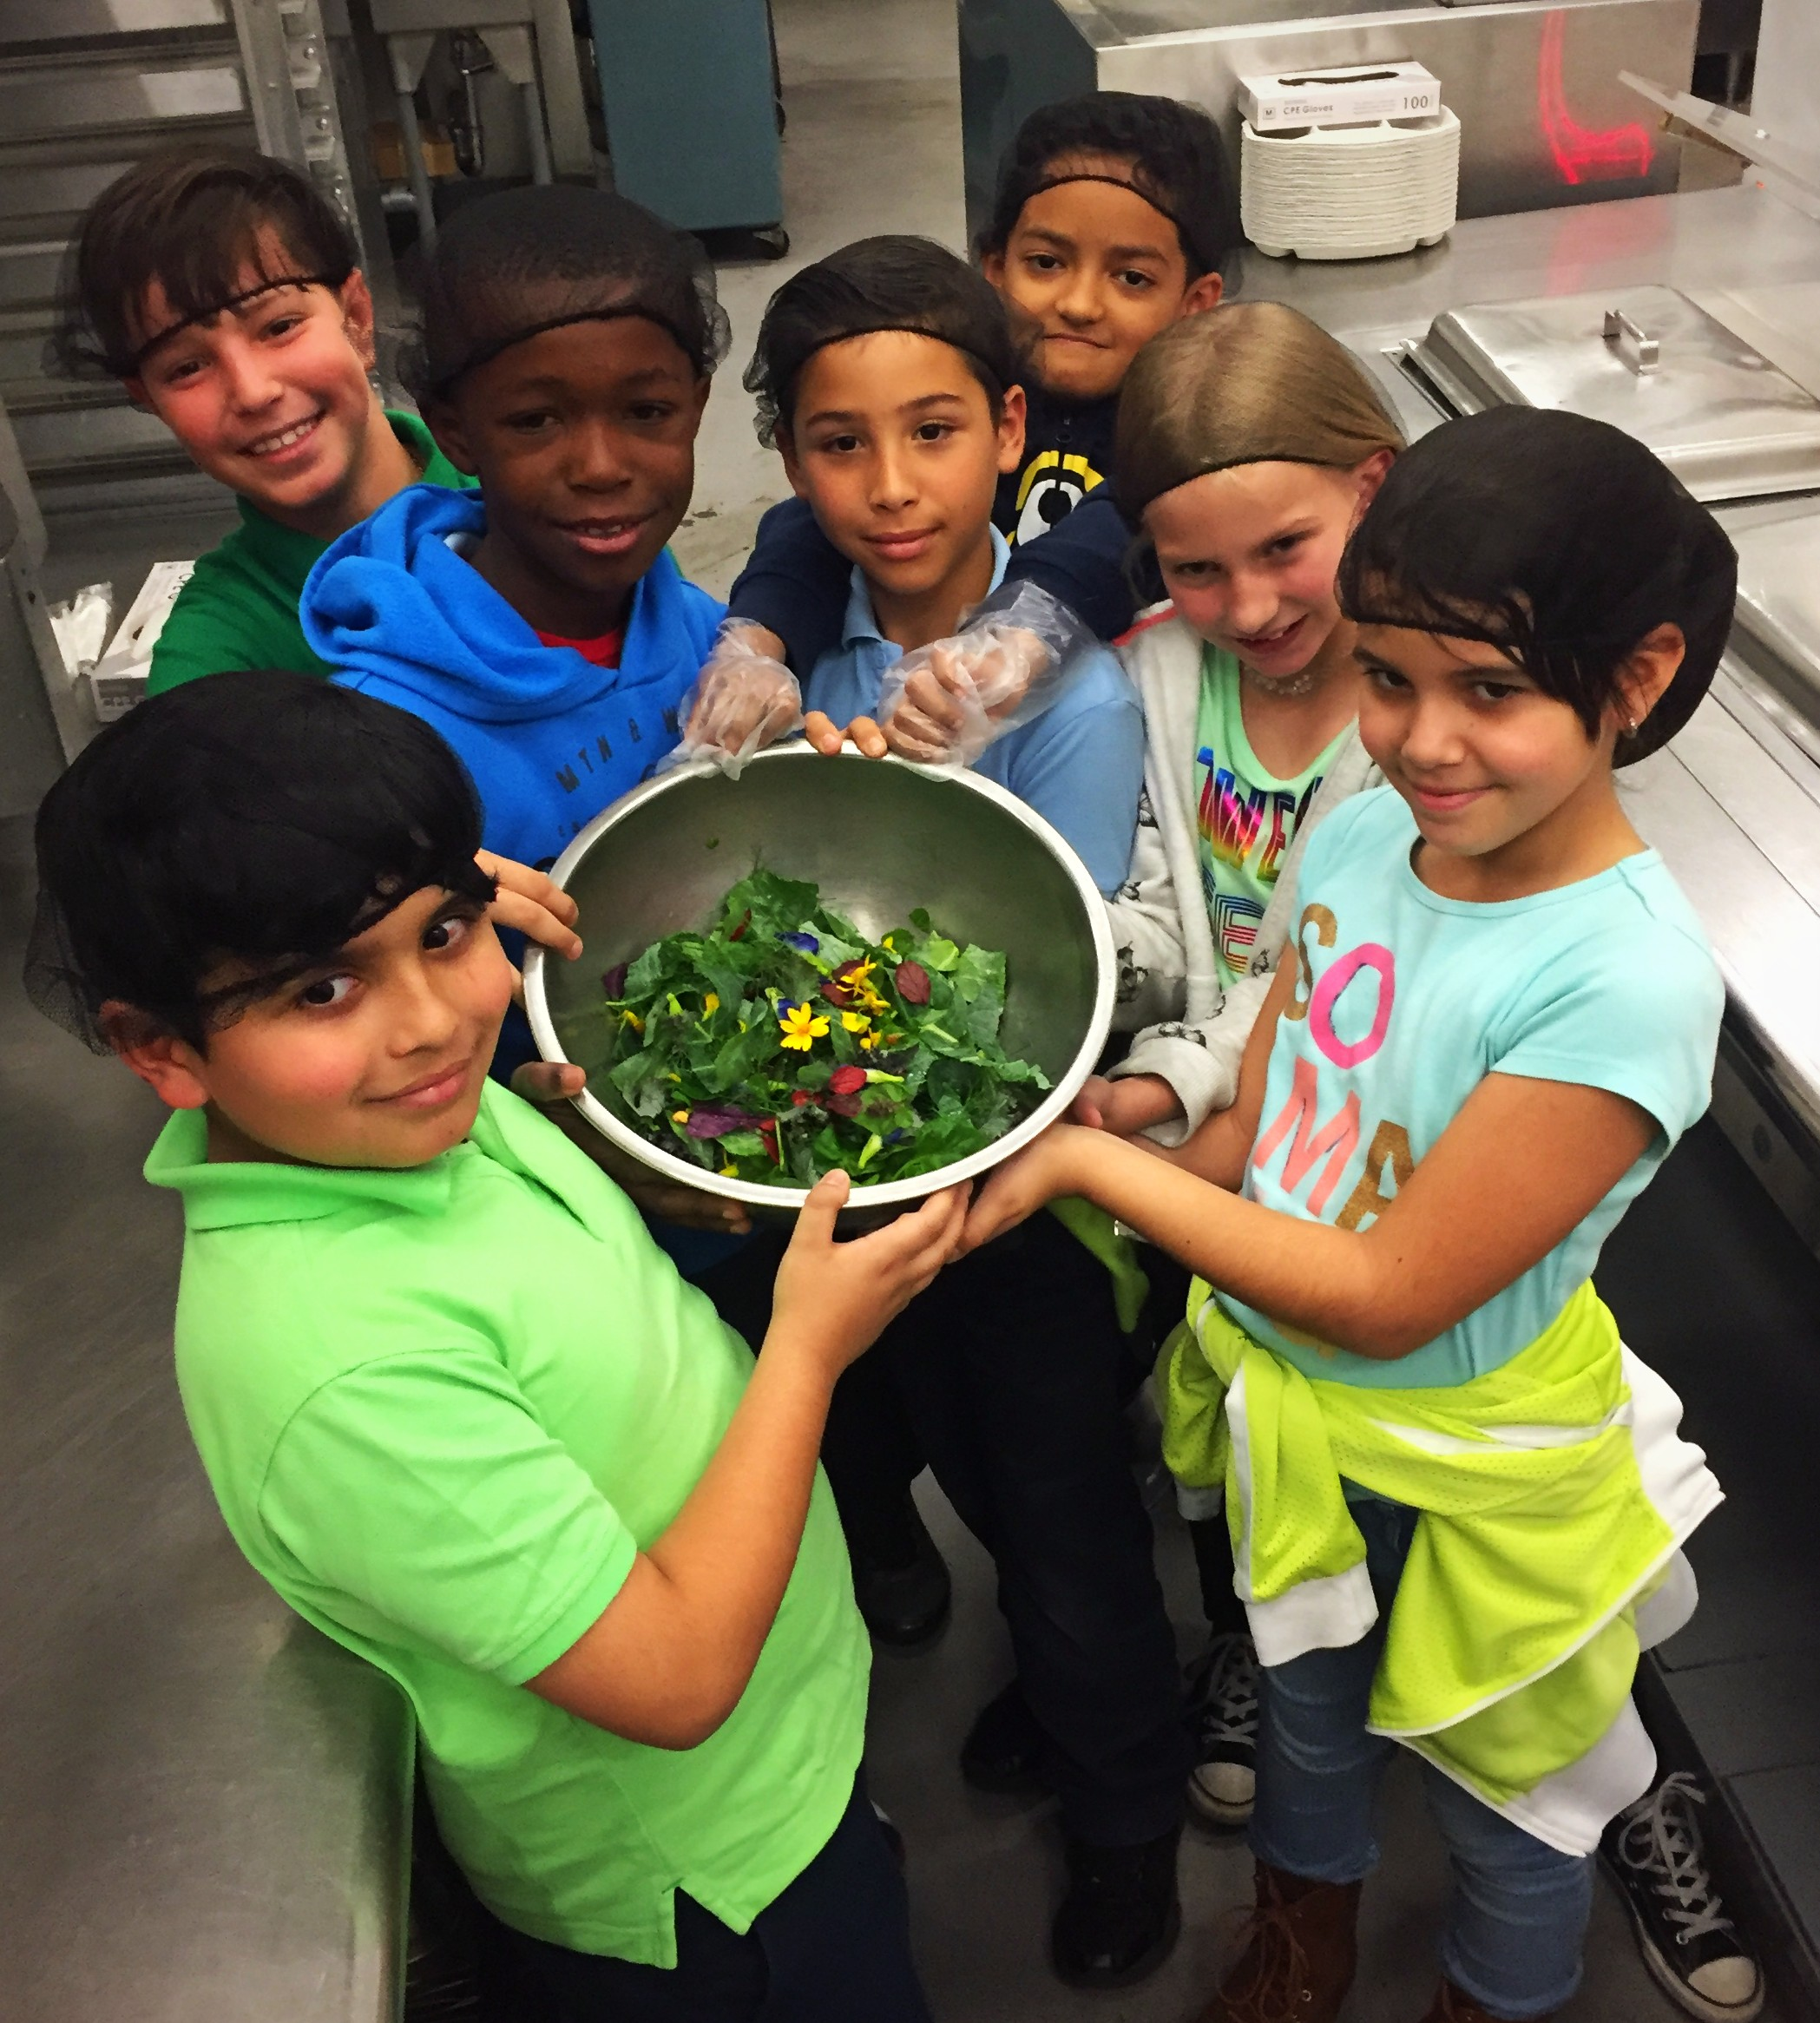 Students proudly display their garden salad